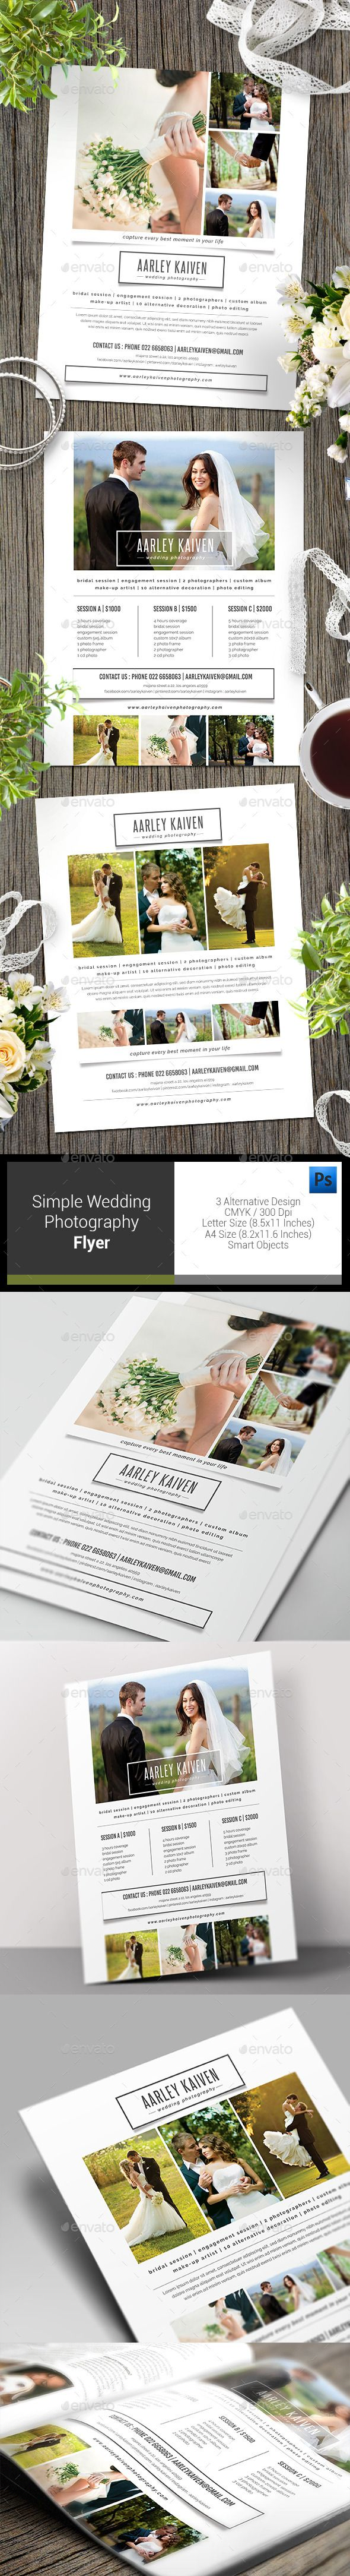 Simple Wedding Photography Flyer Template PSD #design Download: http://graphicriver.net/item/simple-wedding-photography-flyer/12818330?ref=ksioks